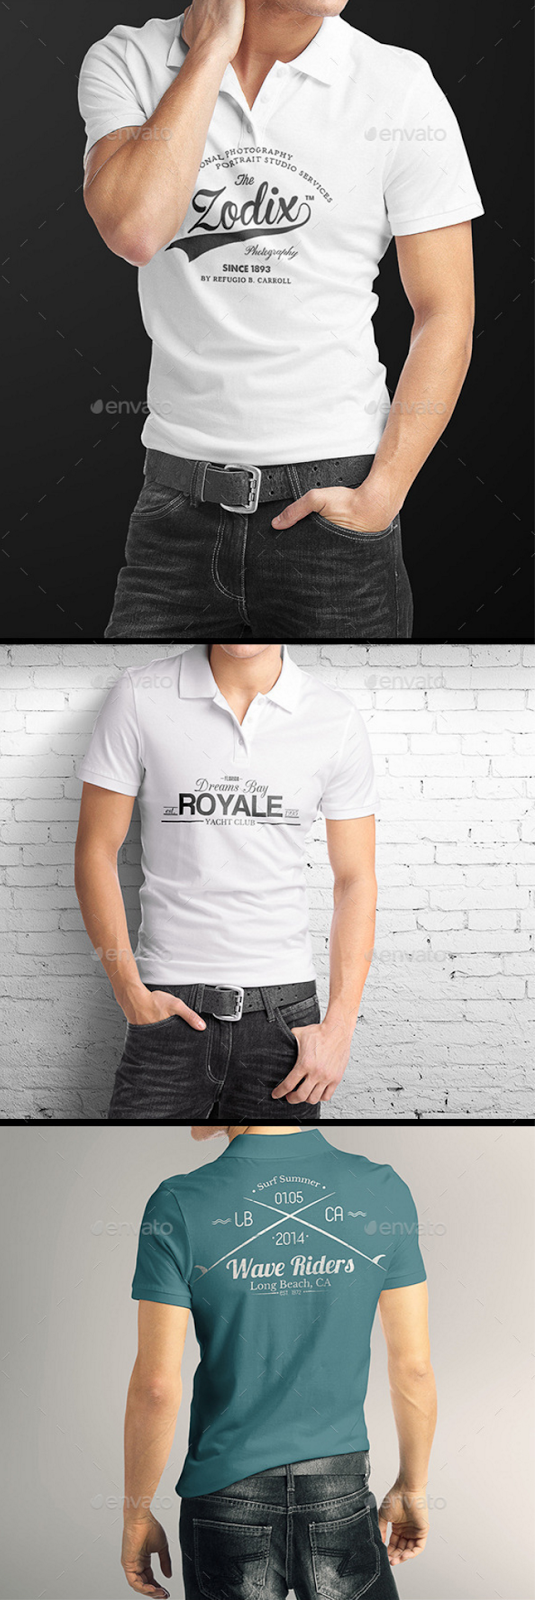 13. Man Polo Shirt Mockup